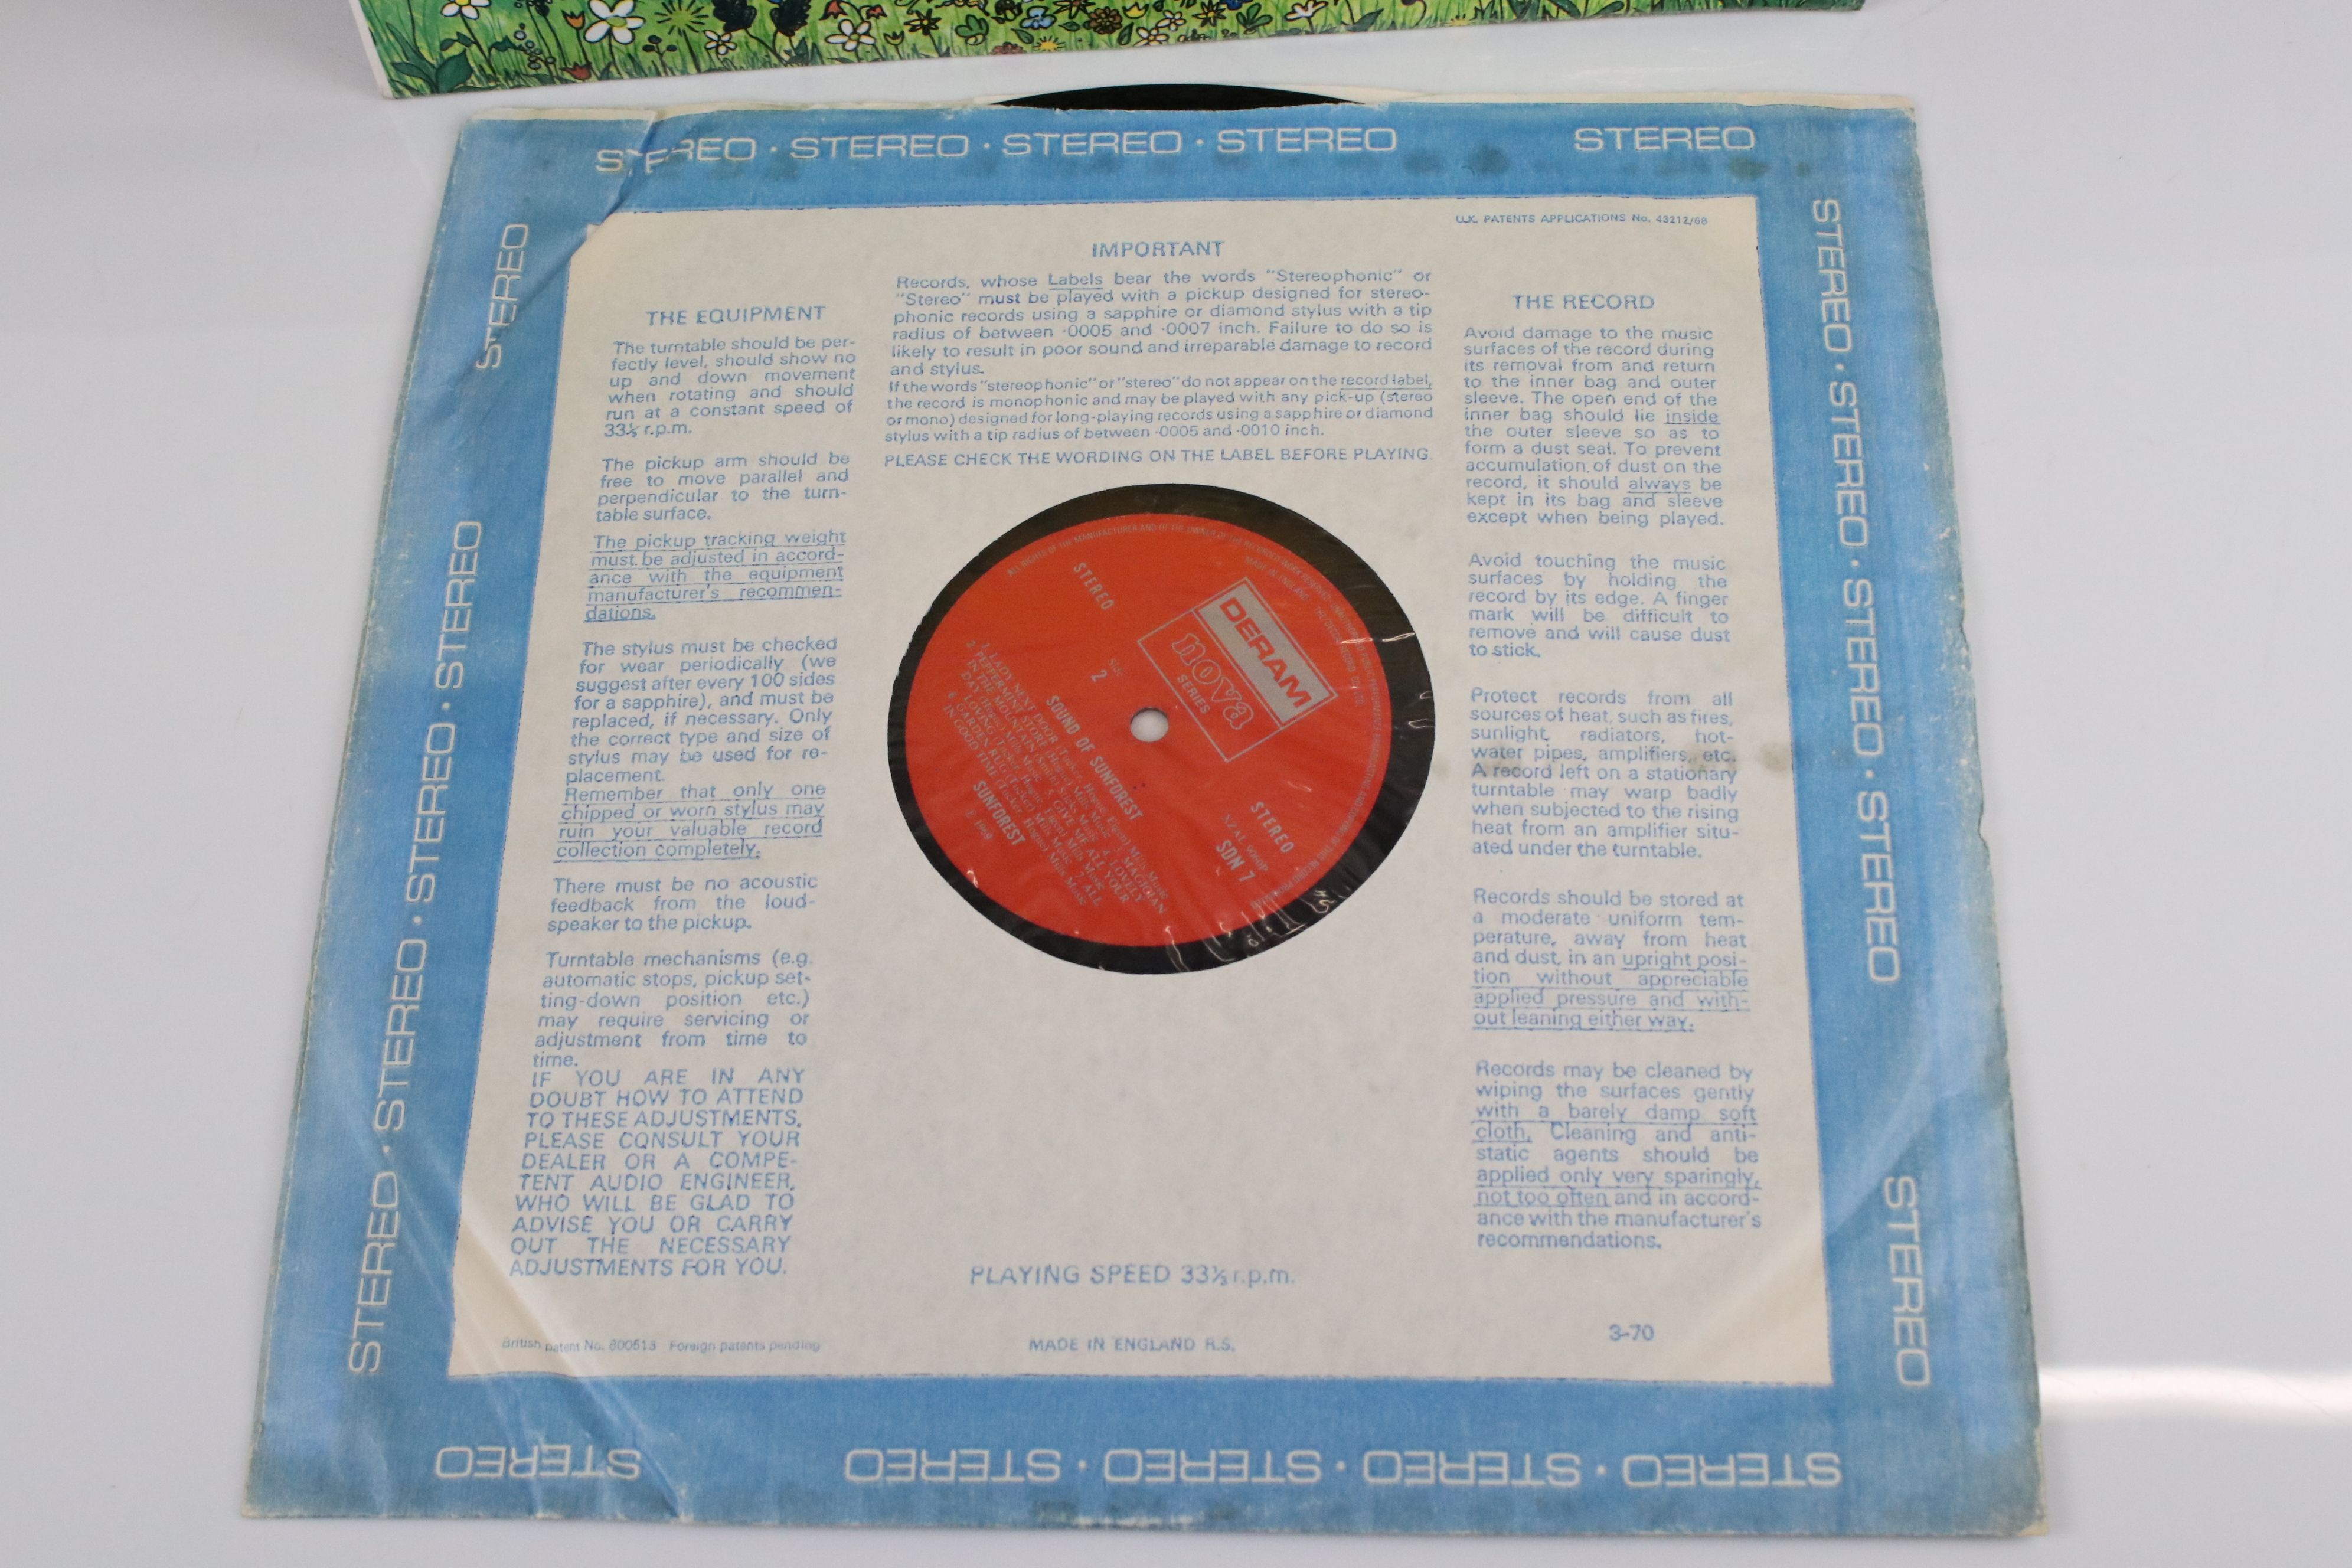 Vinyl - Sunforest Sound of Sunforest LP on Deram / Nova SDNT stereo, red and silver label, laminated - Image 5 of 6